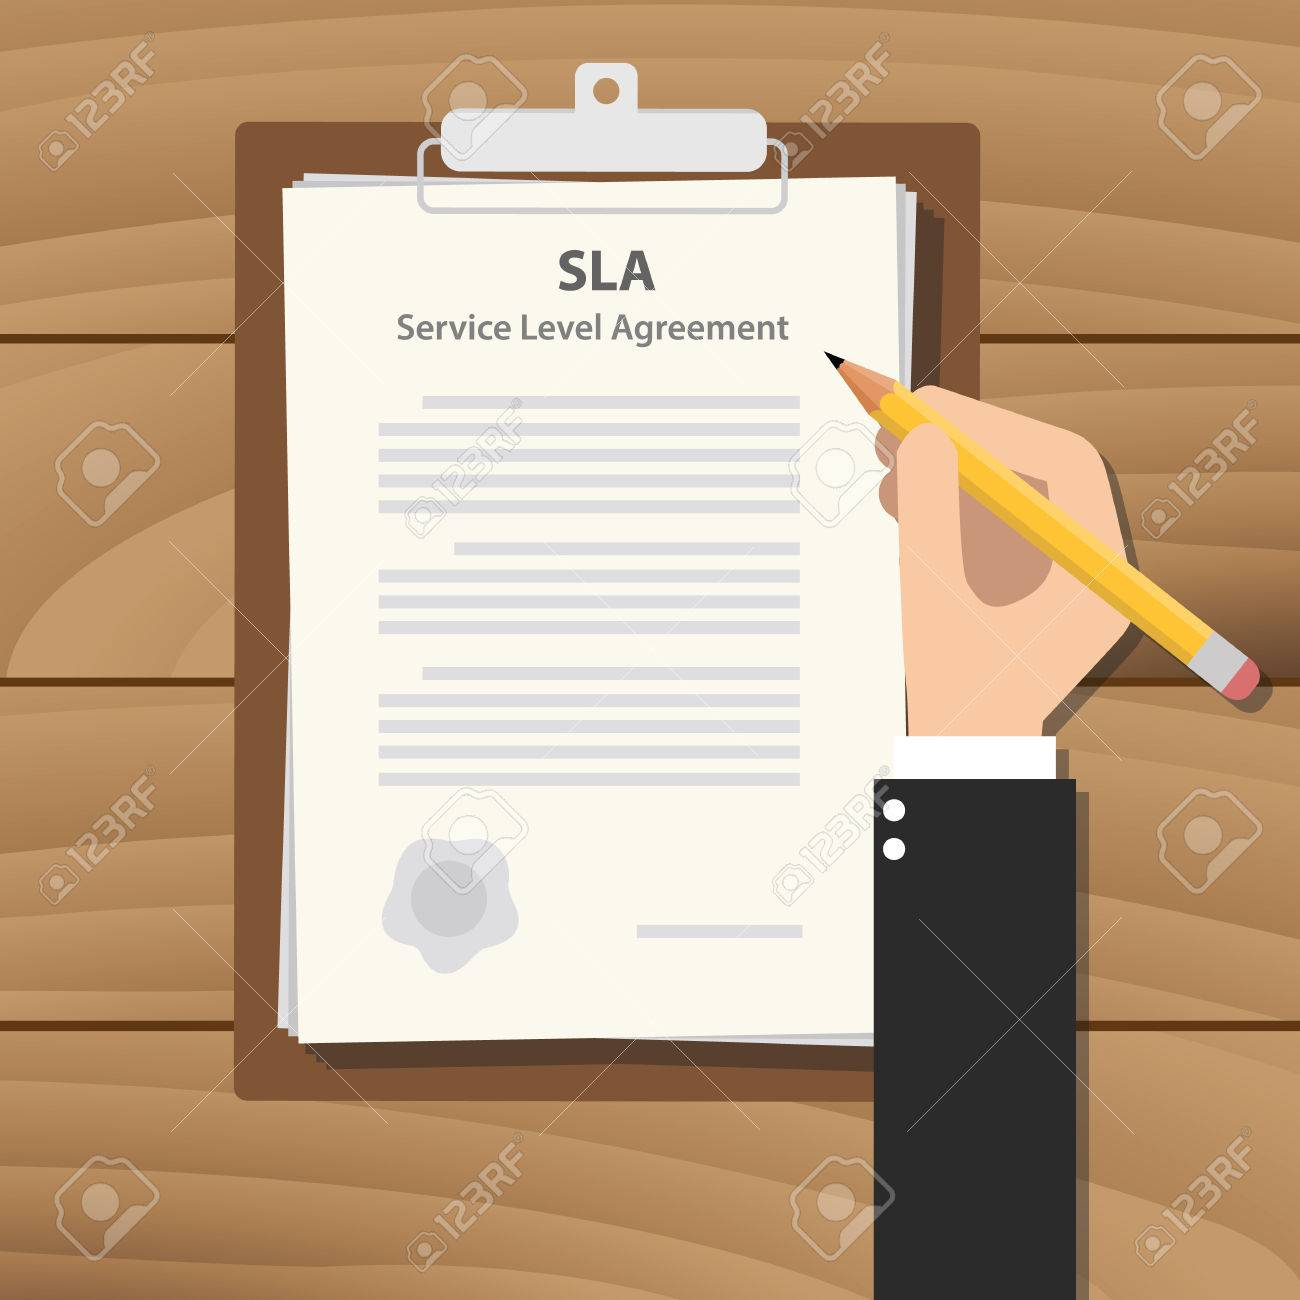 Sla Service Level Agreement Illustration With Business Man Signing A Paper  Work On Clipboard On Wooden